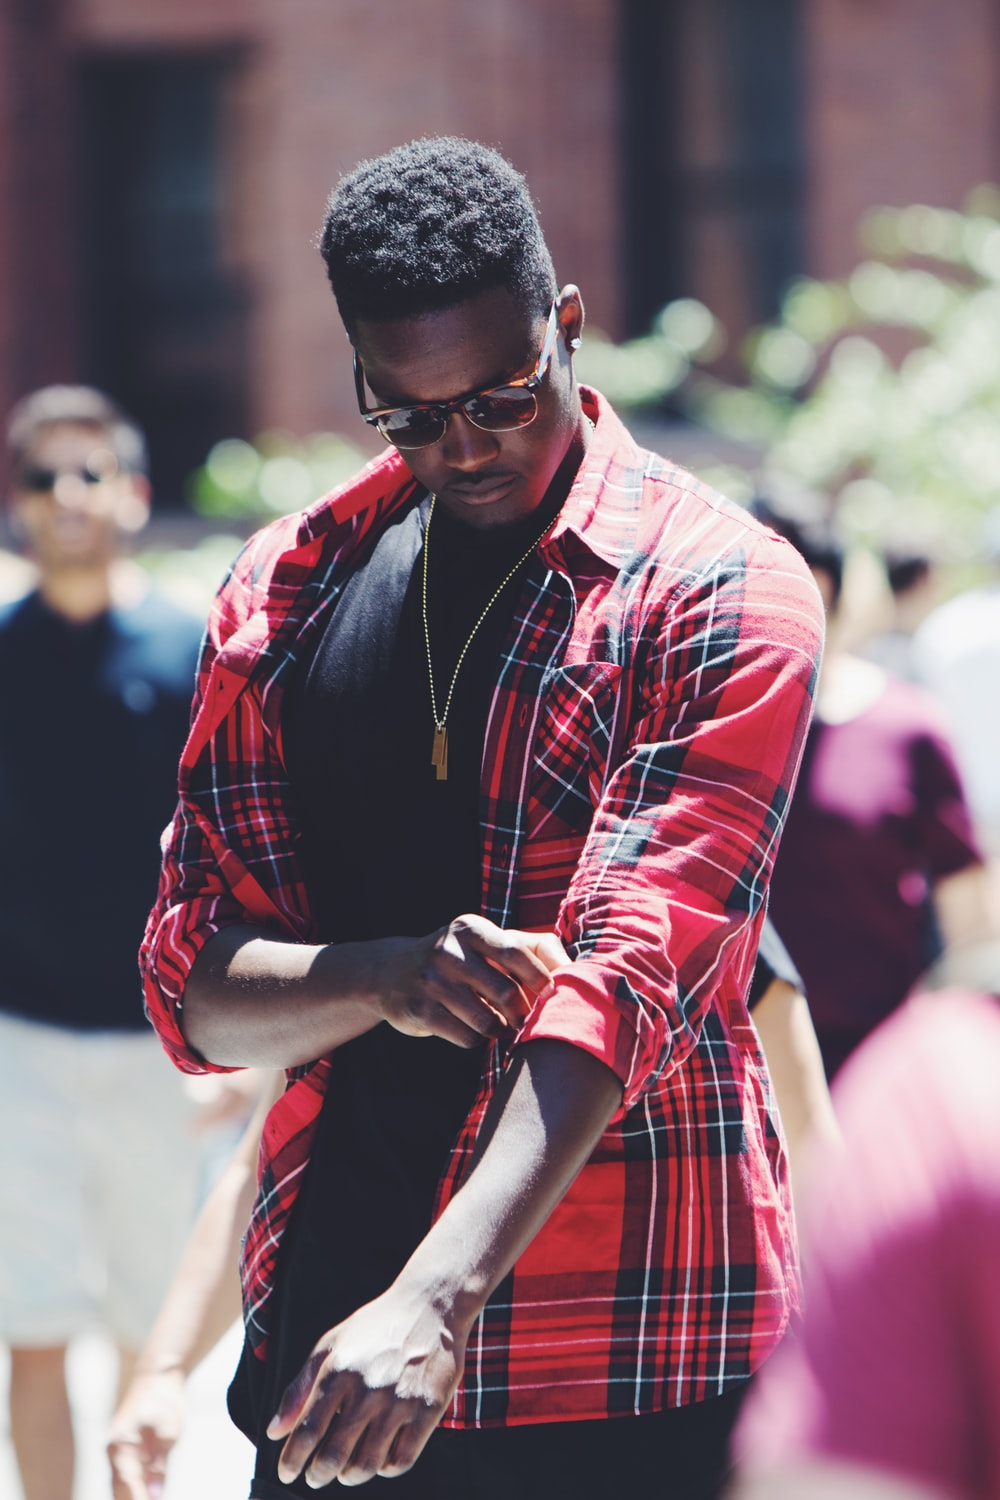 man fixing his red, black, and white plaid sport shirt sleeve during daytime